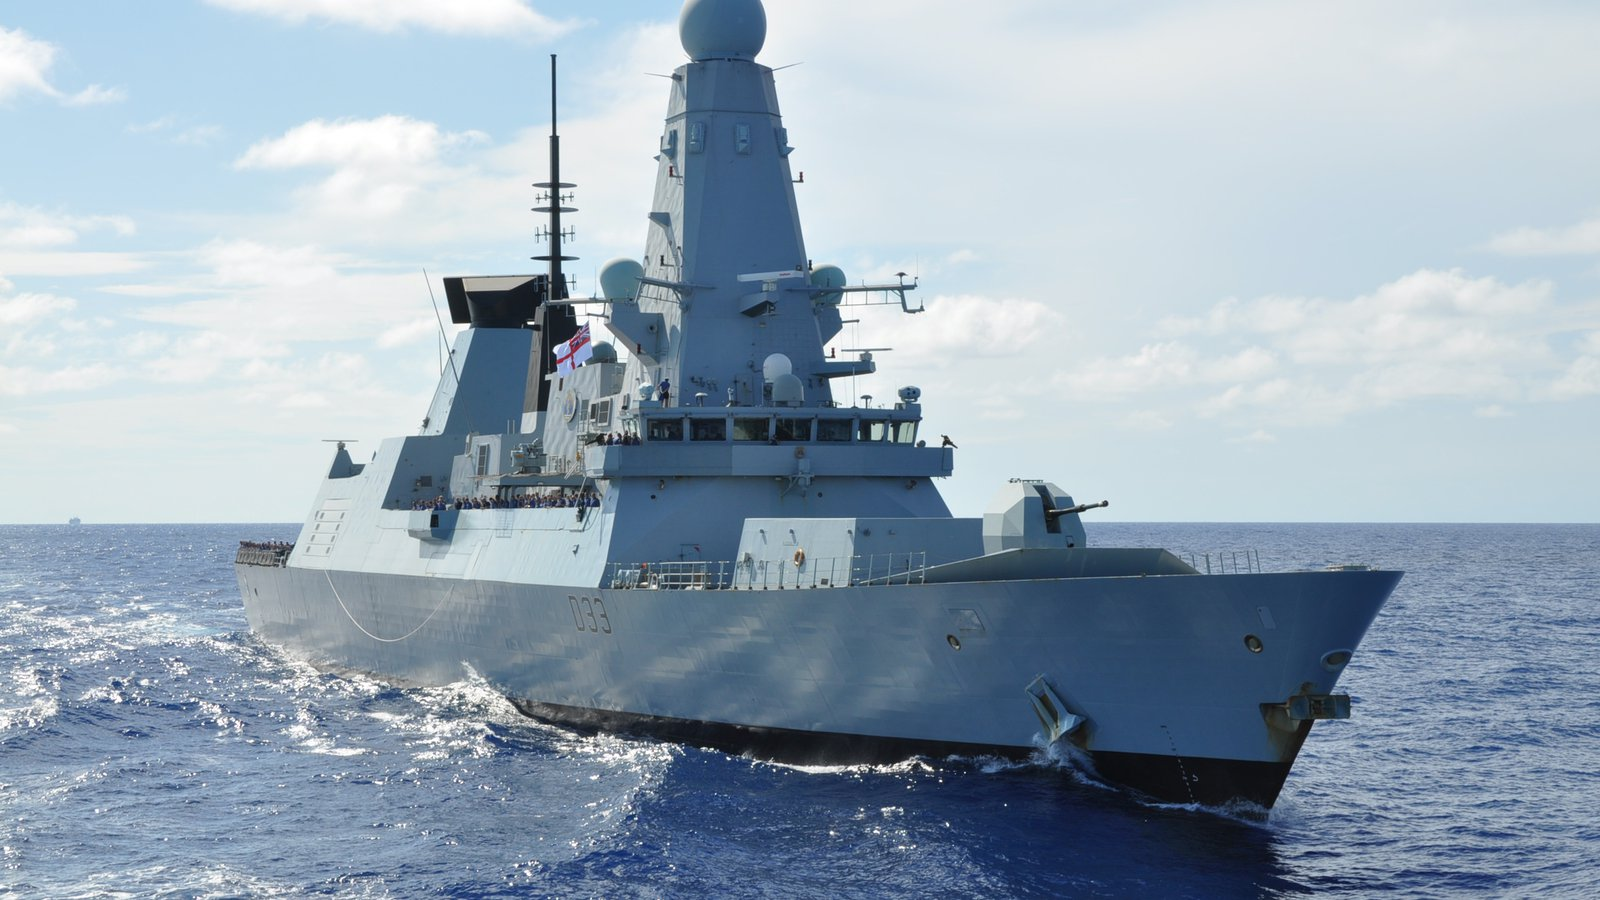 Royal Navy destroyer HMS dauntless